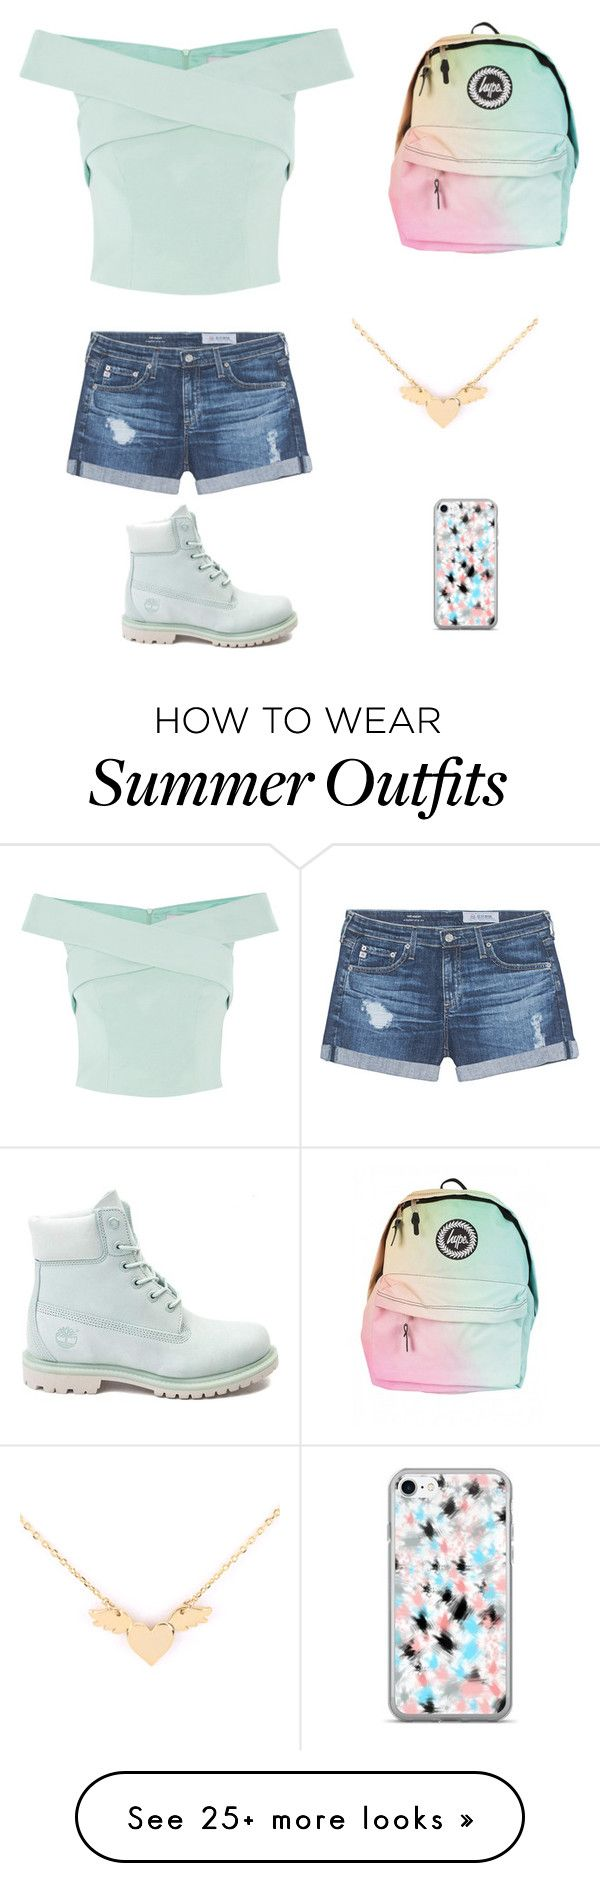 """644b75ebf60 Summer Outfits   """"This is the perfect outfit for summer"""" by peyttontreasure  on Polyvore featuring…"""